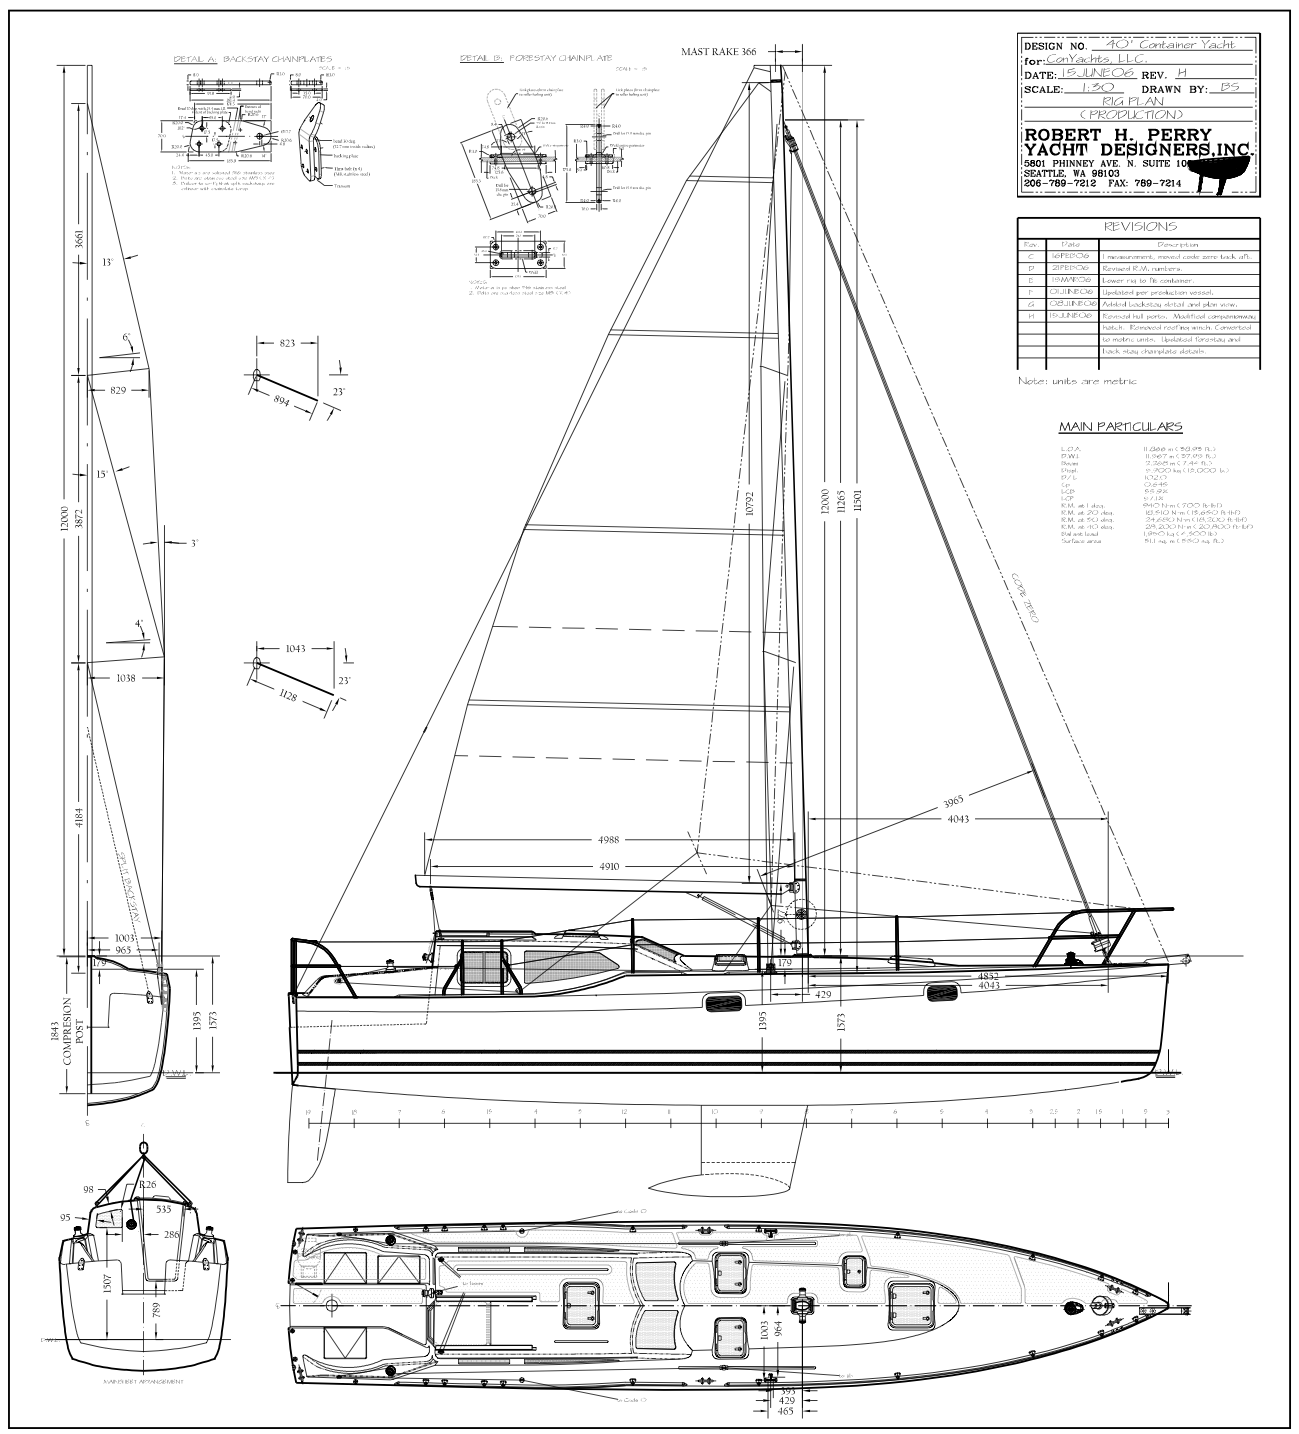 Robert H. Perry Yacht Designers, Inc. Drawings & Plans